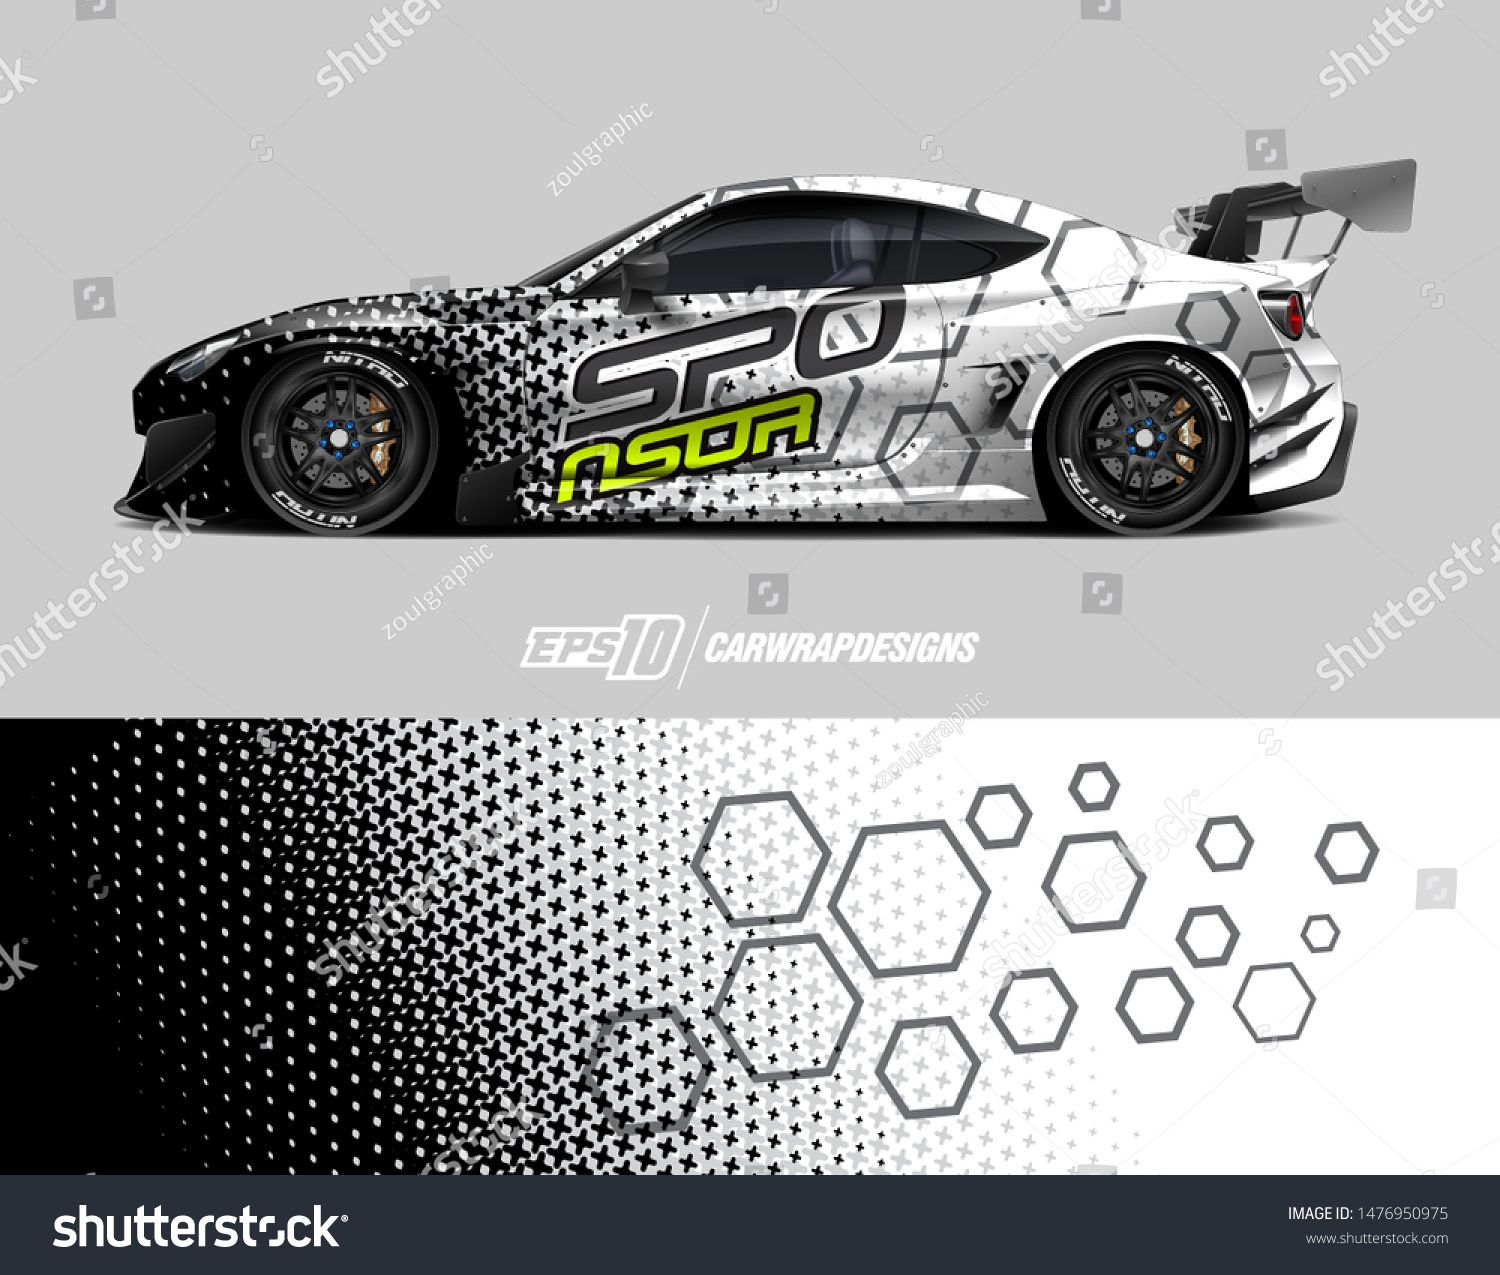 Car wrap decal design concept  Abstract grunge background